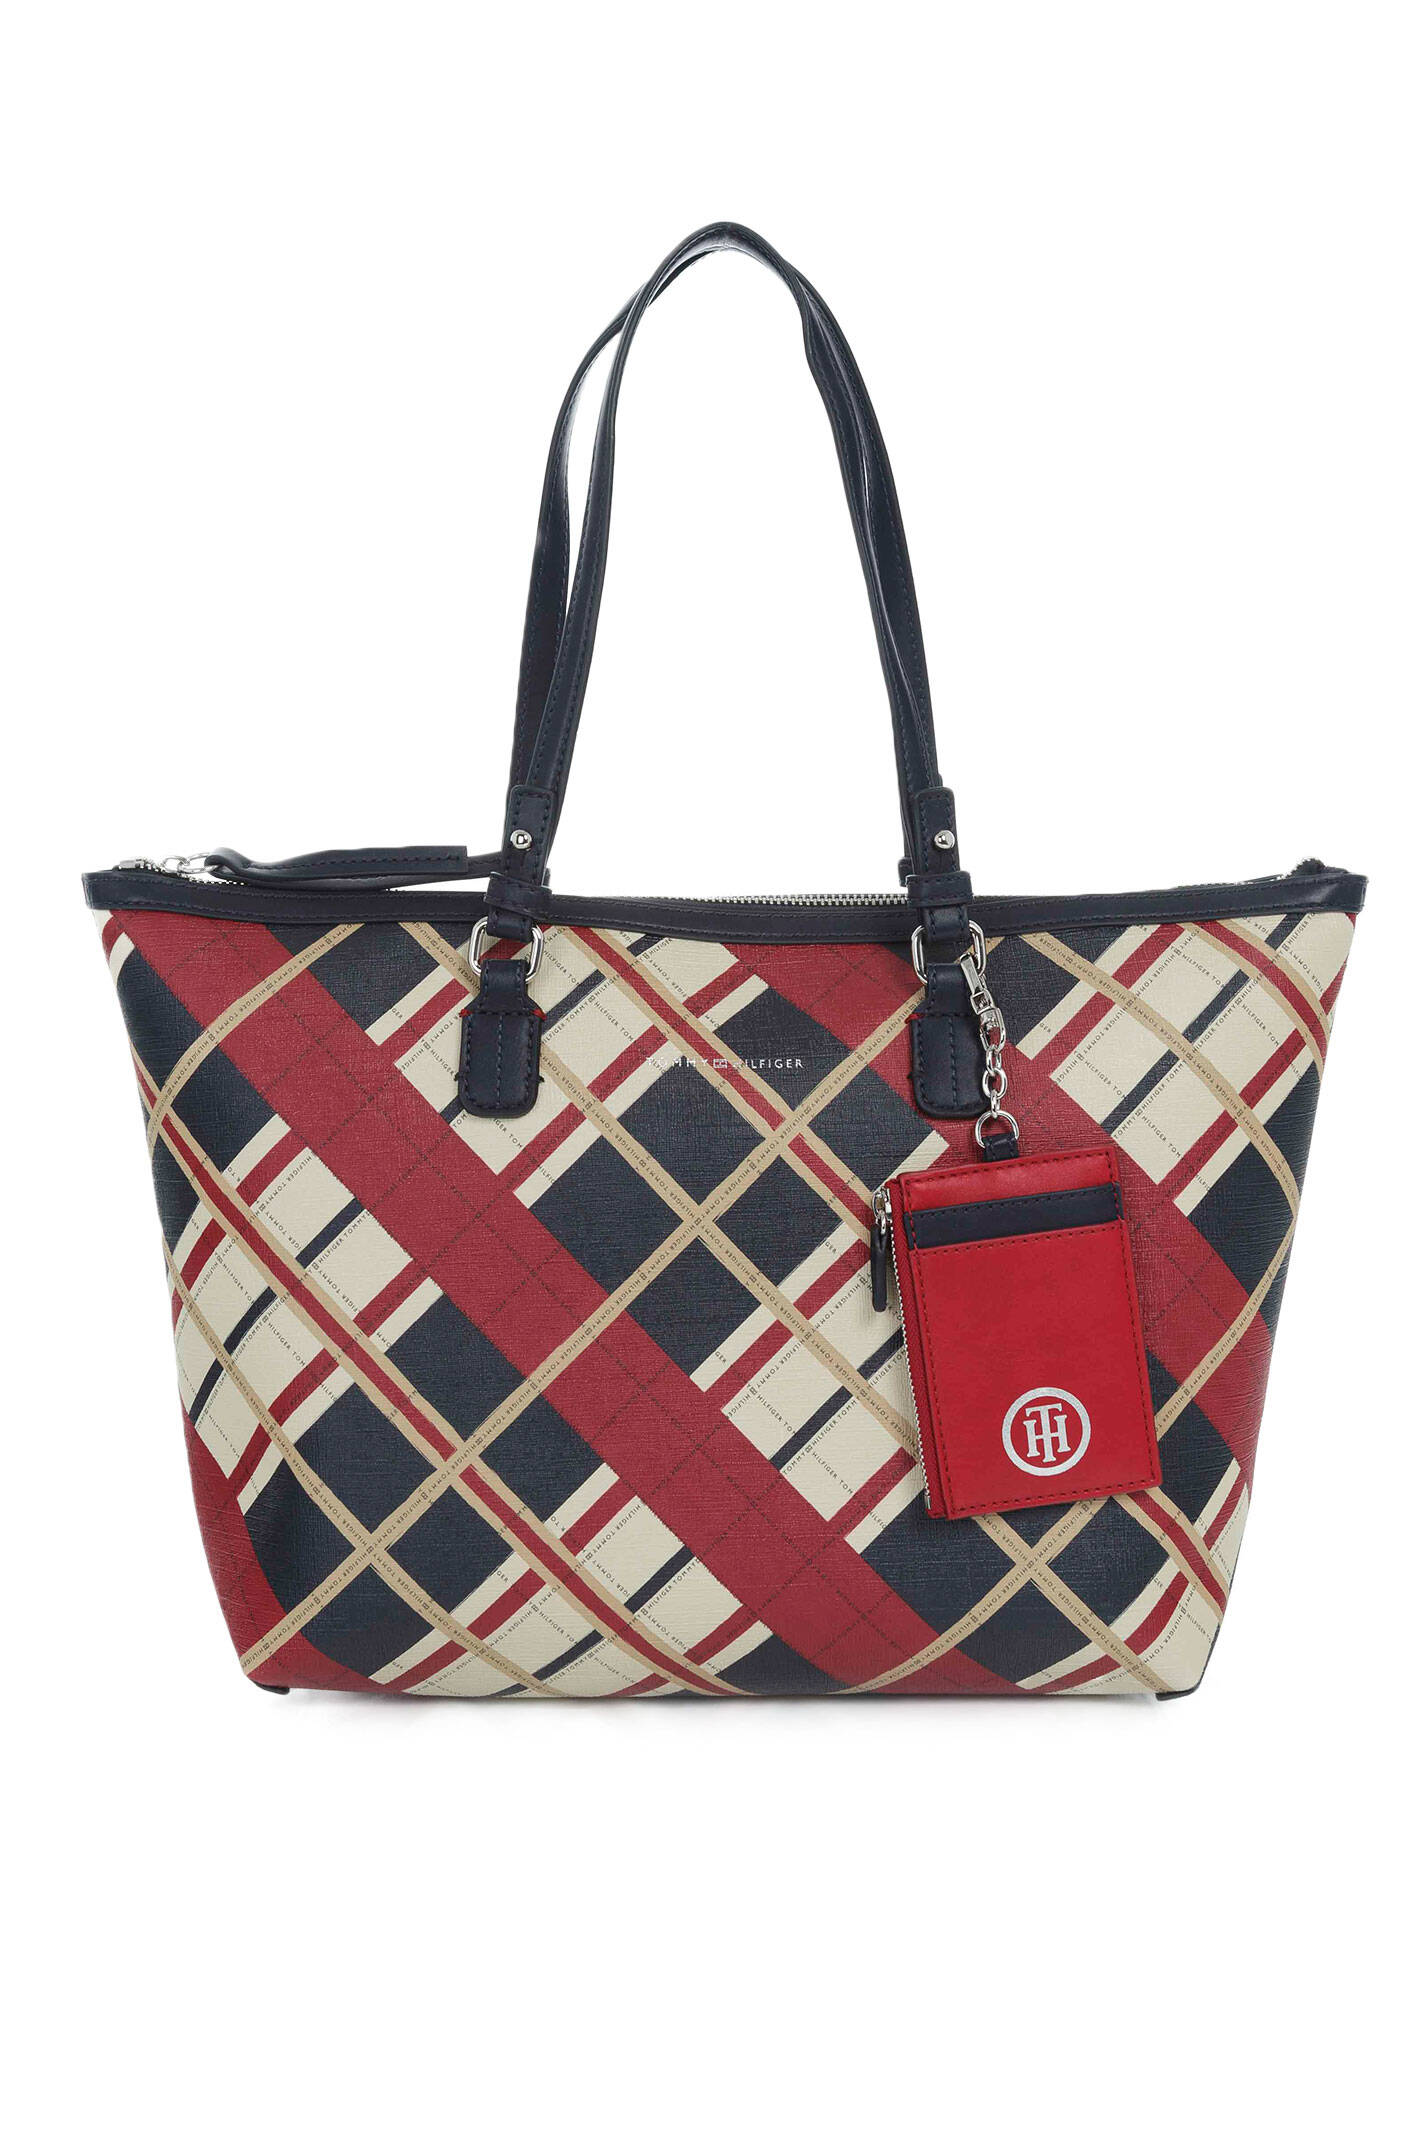 2c5439521da Love Tommy Rev. Med Tote Check Shopper Bag Tommy Hilfiger | Navy blue |  Gomez.pl/en